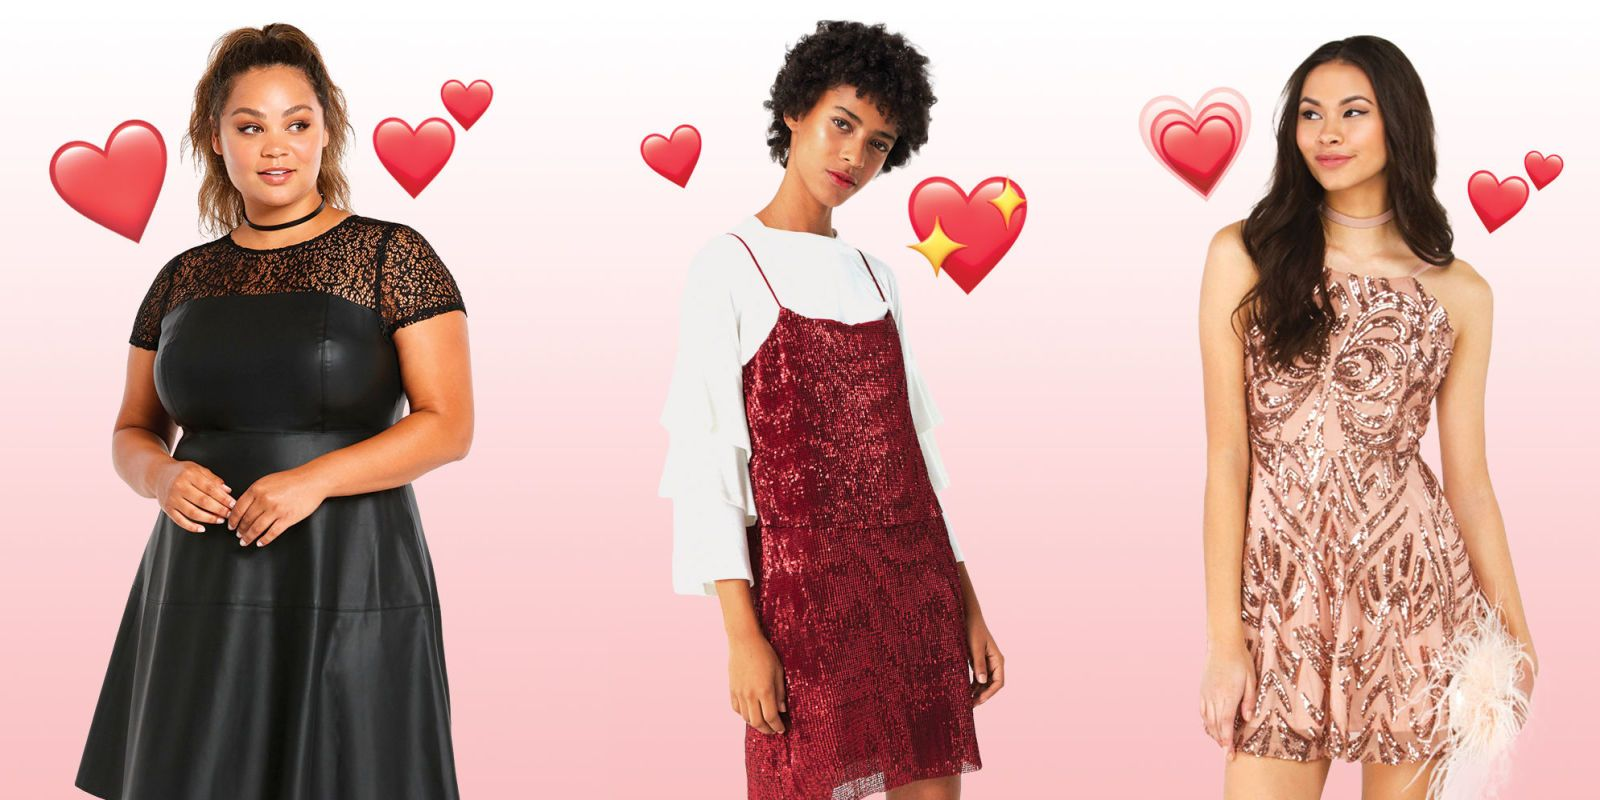 ... Skip The All Over Hearts And Go For Unexpected Details, Like Raw Edged  Lace And Flirty Cutouts. Update Your Valentineu0027s Style With These Hot  Dresses ...